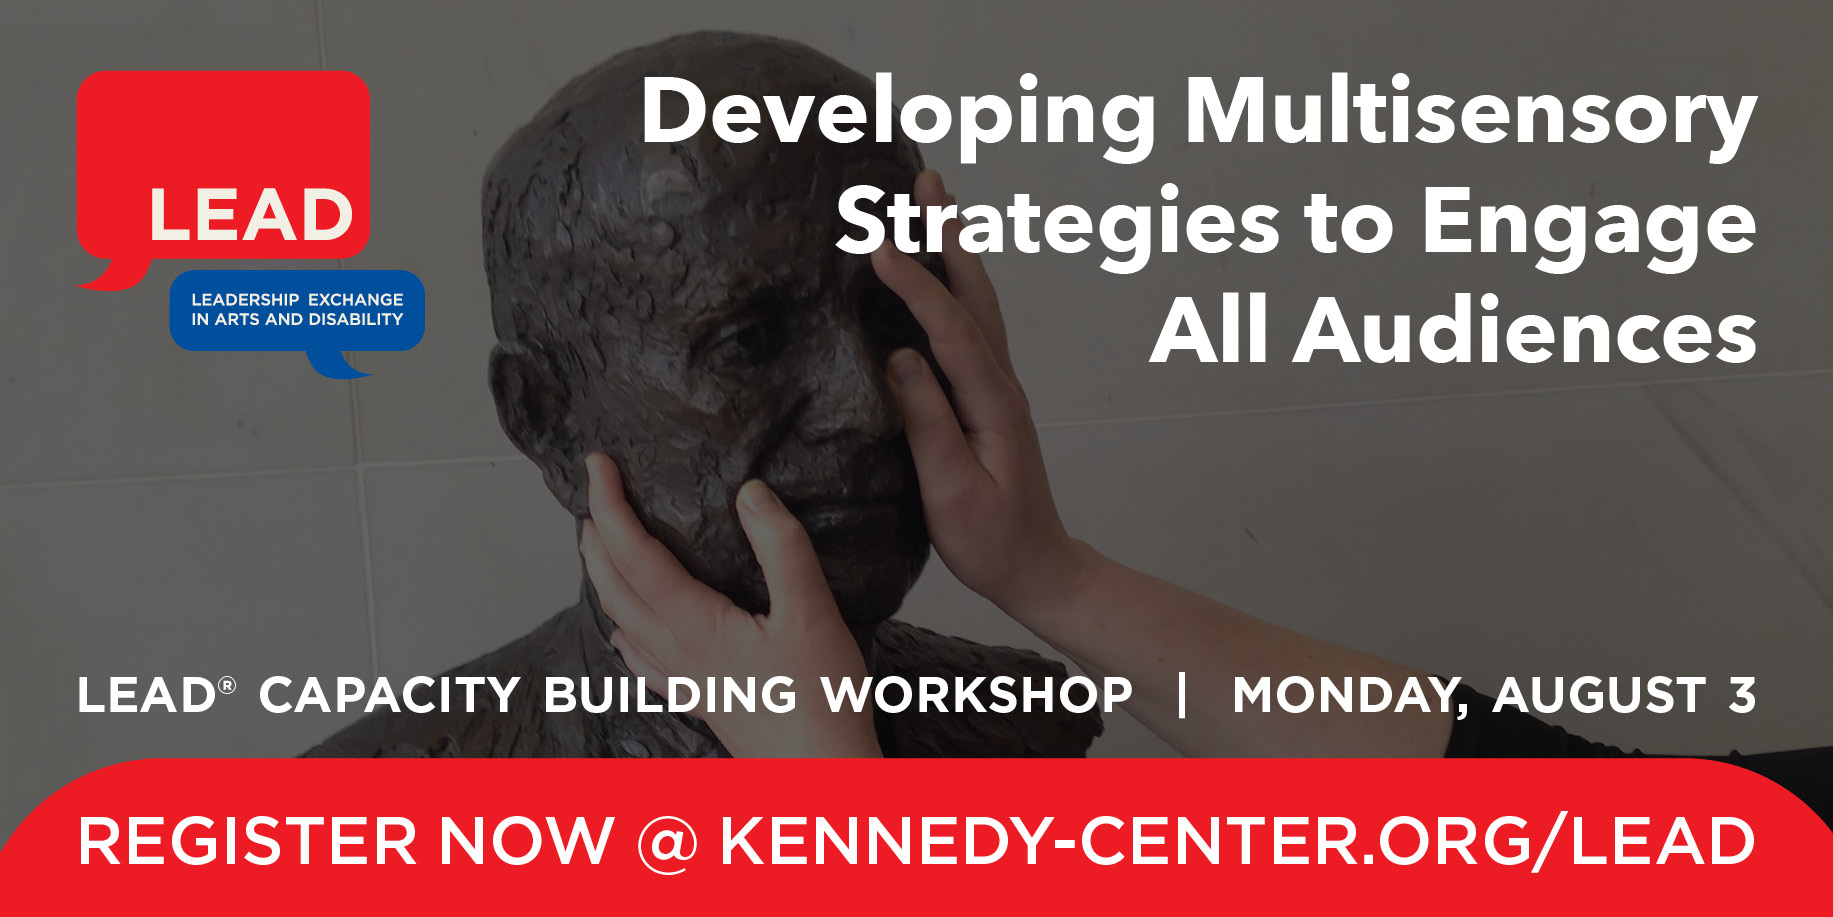 Pre-Conference Graphic: Developing Multisensory Strategies to Engaged All Audiences